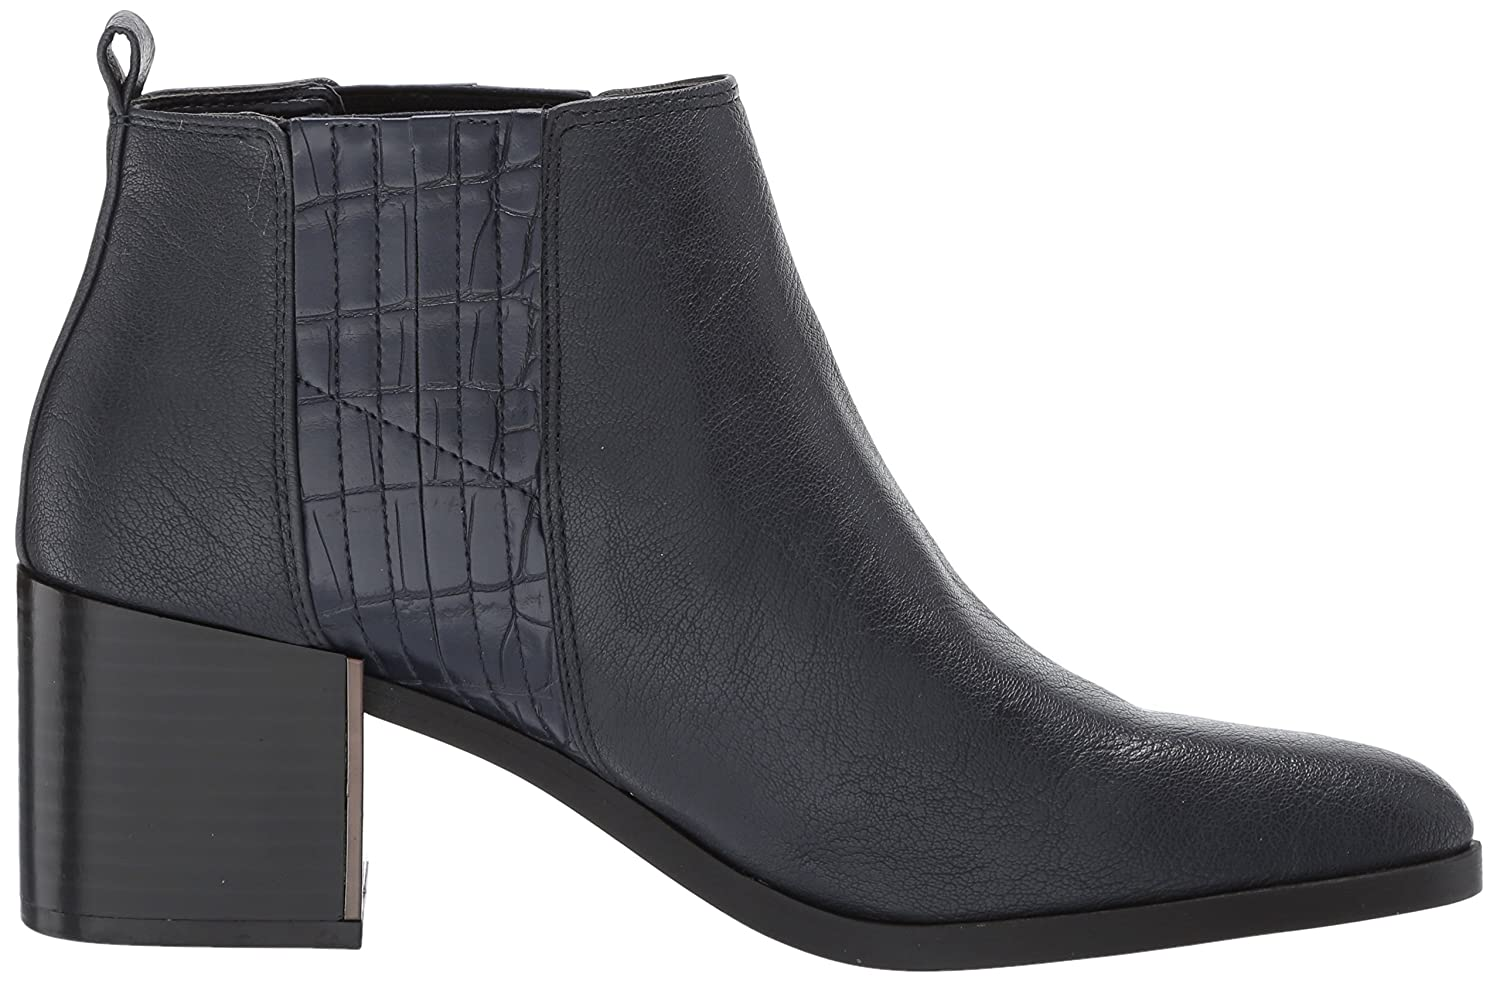 Nine West Women's Walburga Synthetic Ankle Boot B071HV261P 9 B(M) US|Navy/Navy Synthetic